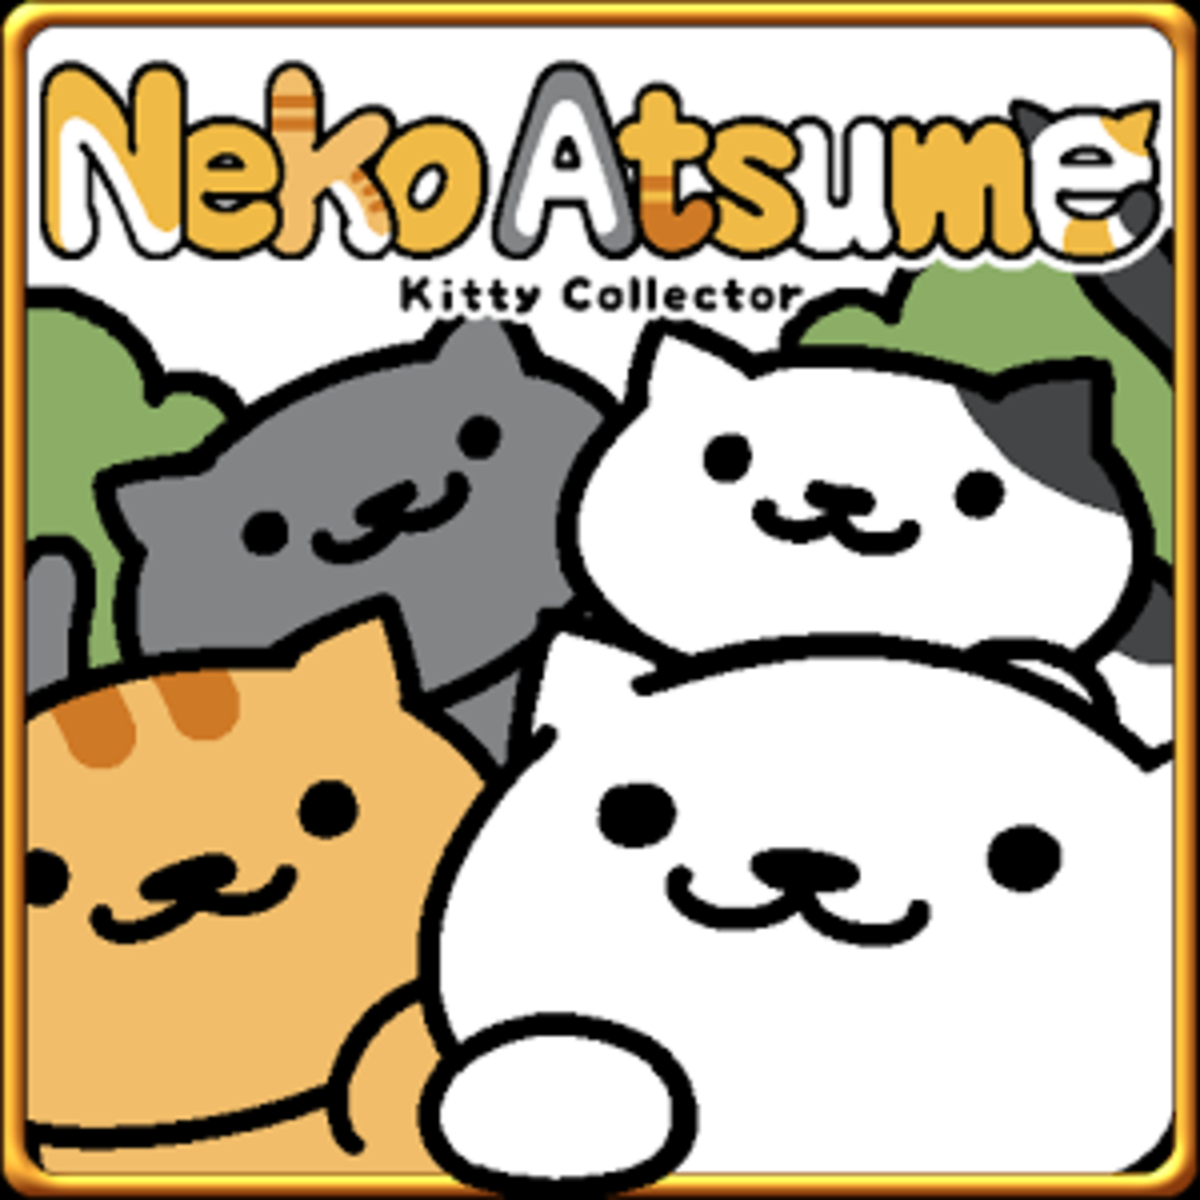 """Neko atsume logo"" by Source. Licensed under Fair use via Wikipedia"